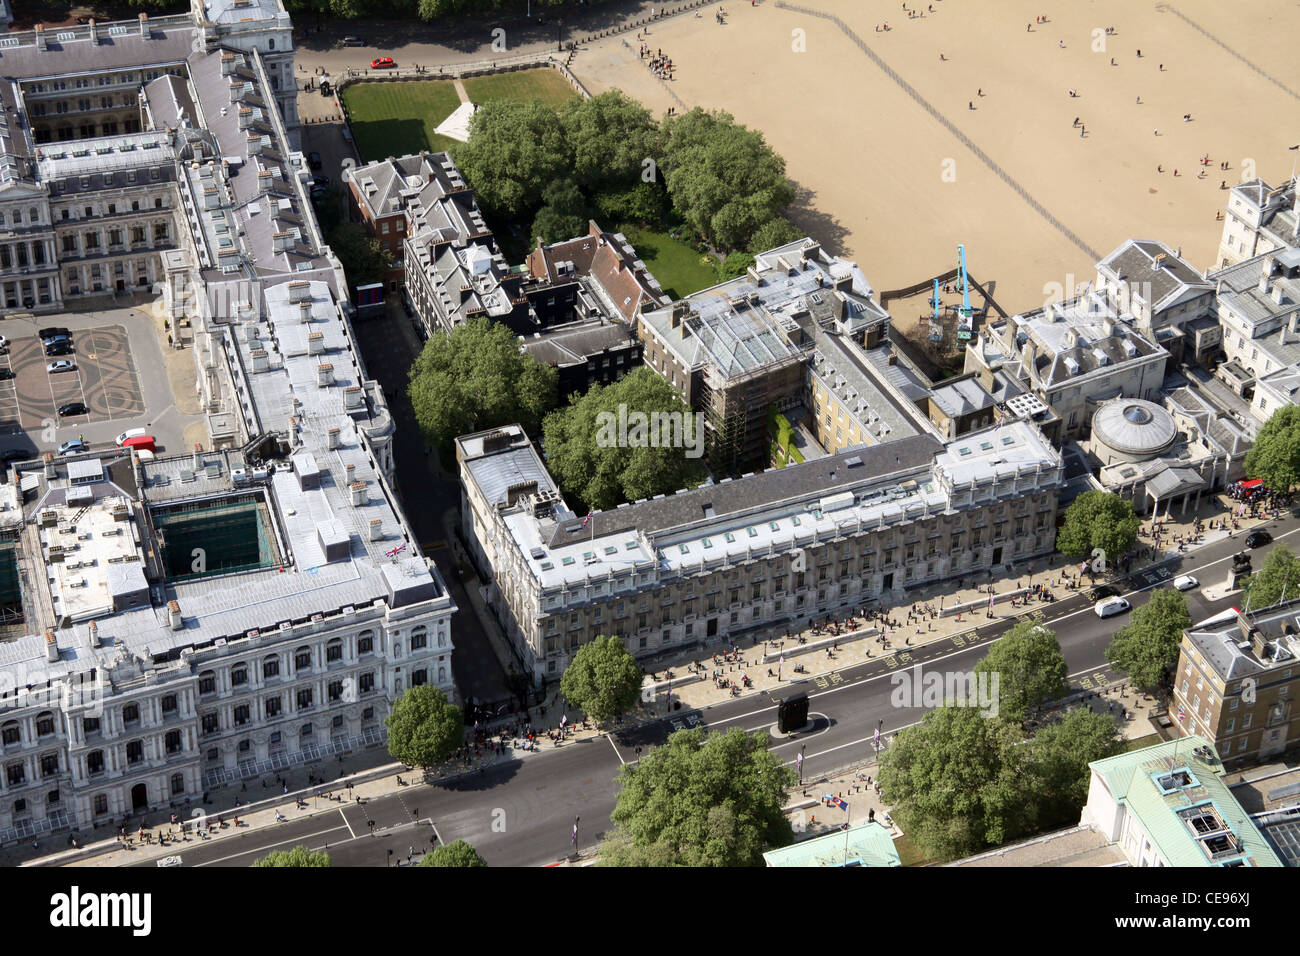 Aerial image, Downing Street, Whitehall, London SW1 - Stock Image